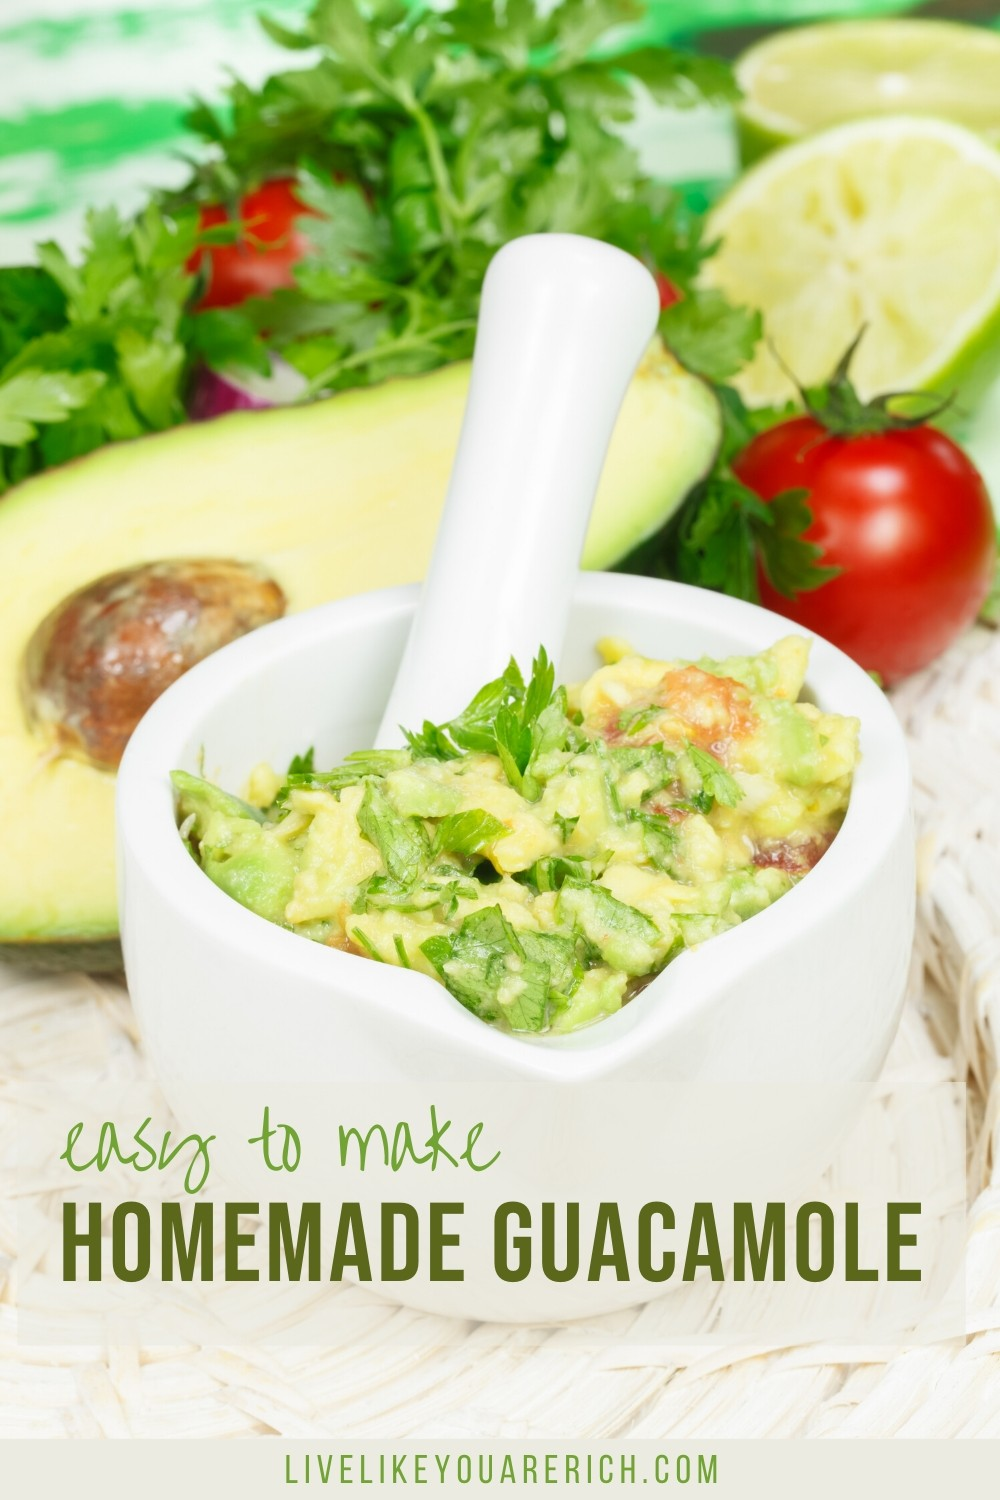 I've made this guacamole recipe countless times since discovering this easy and simple recipe. I've made it for my family, extended family, and for parties. Everyone has always said that it is either 'super good' or the 'BEST guacamole' they've had.